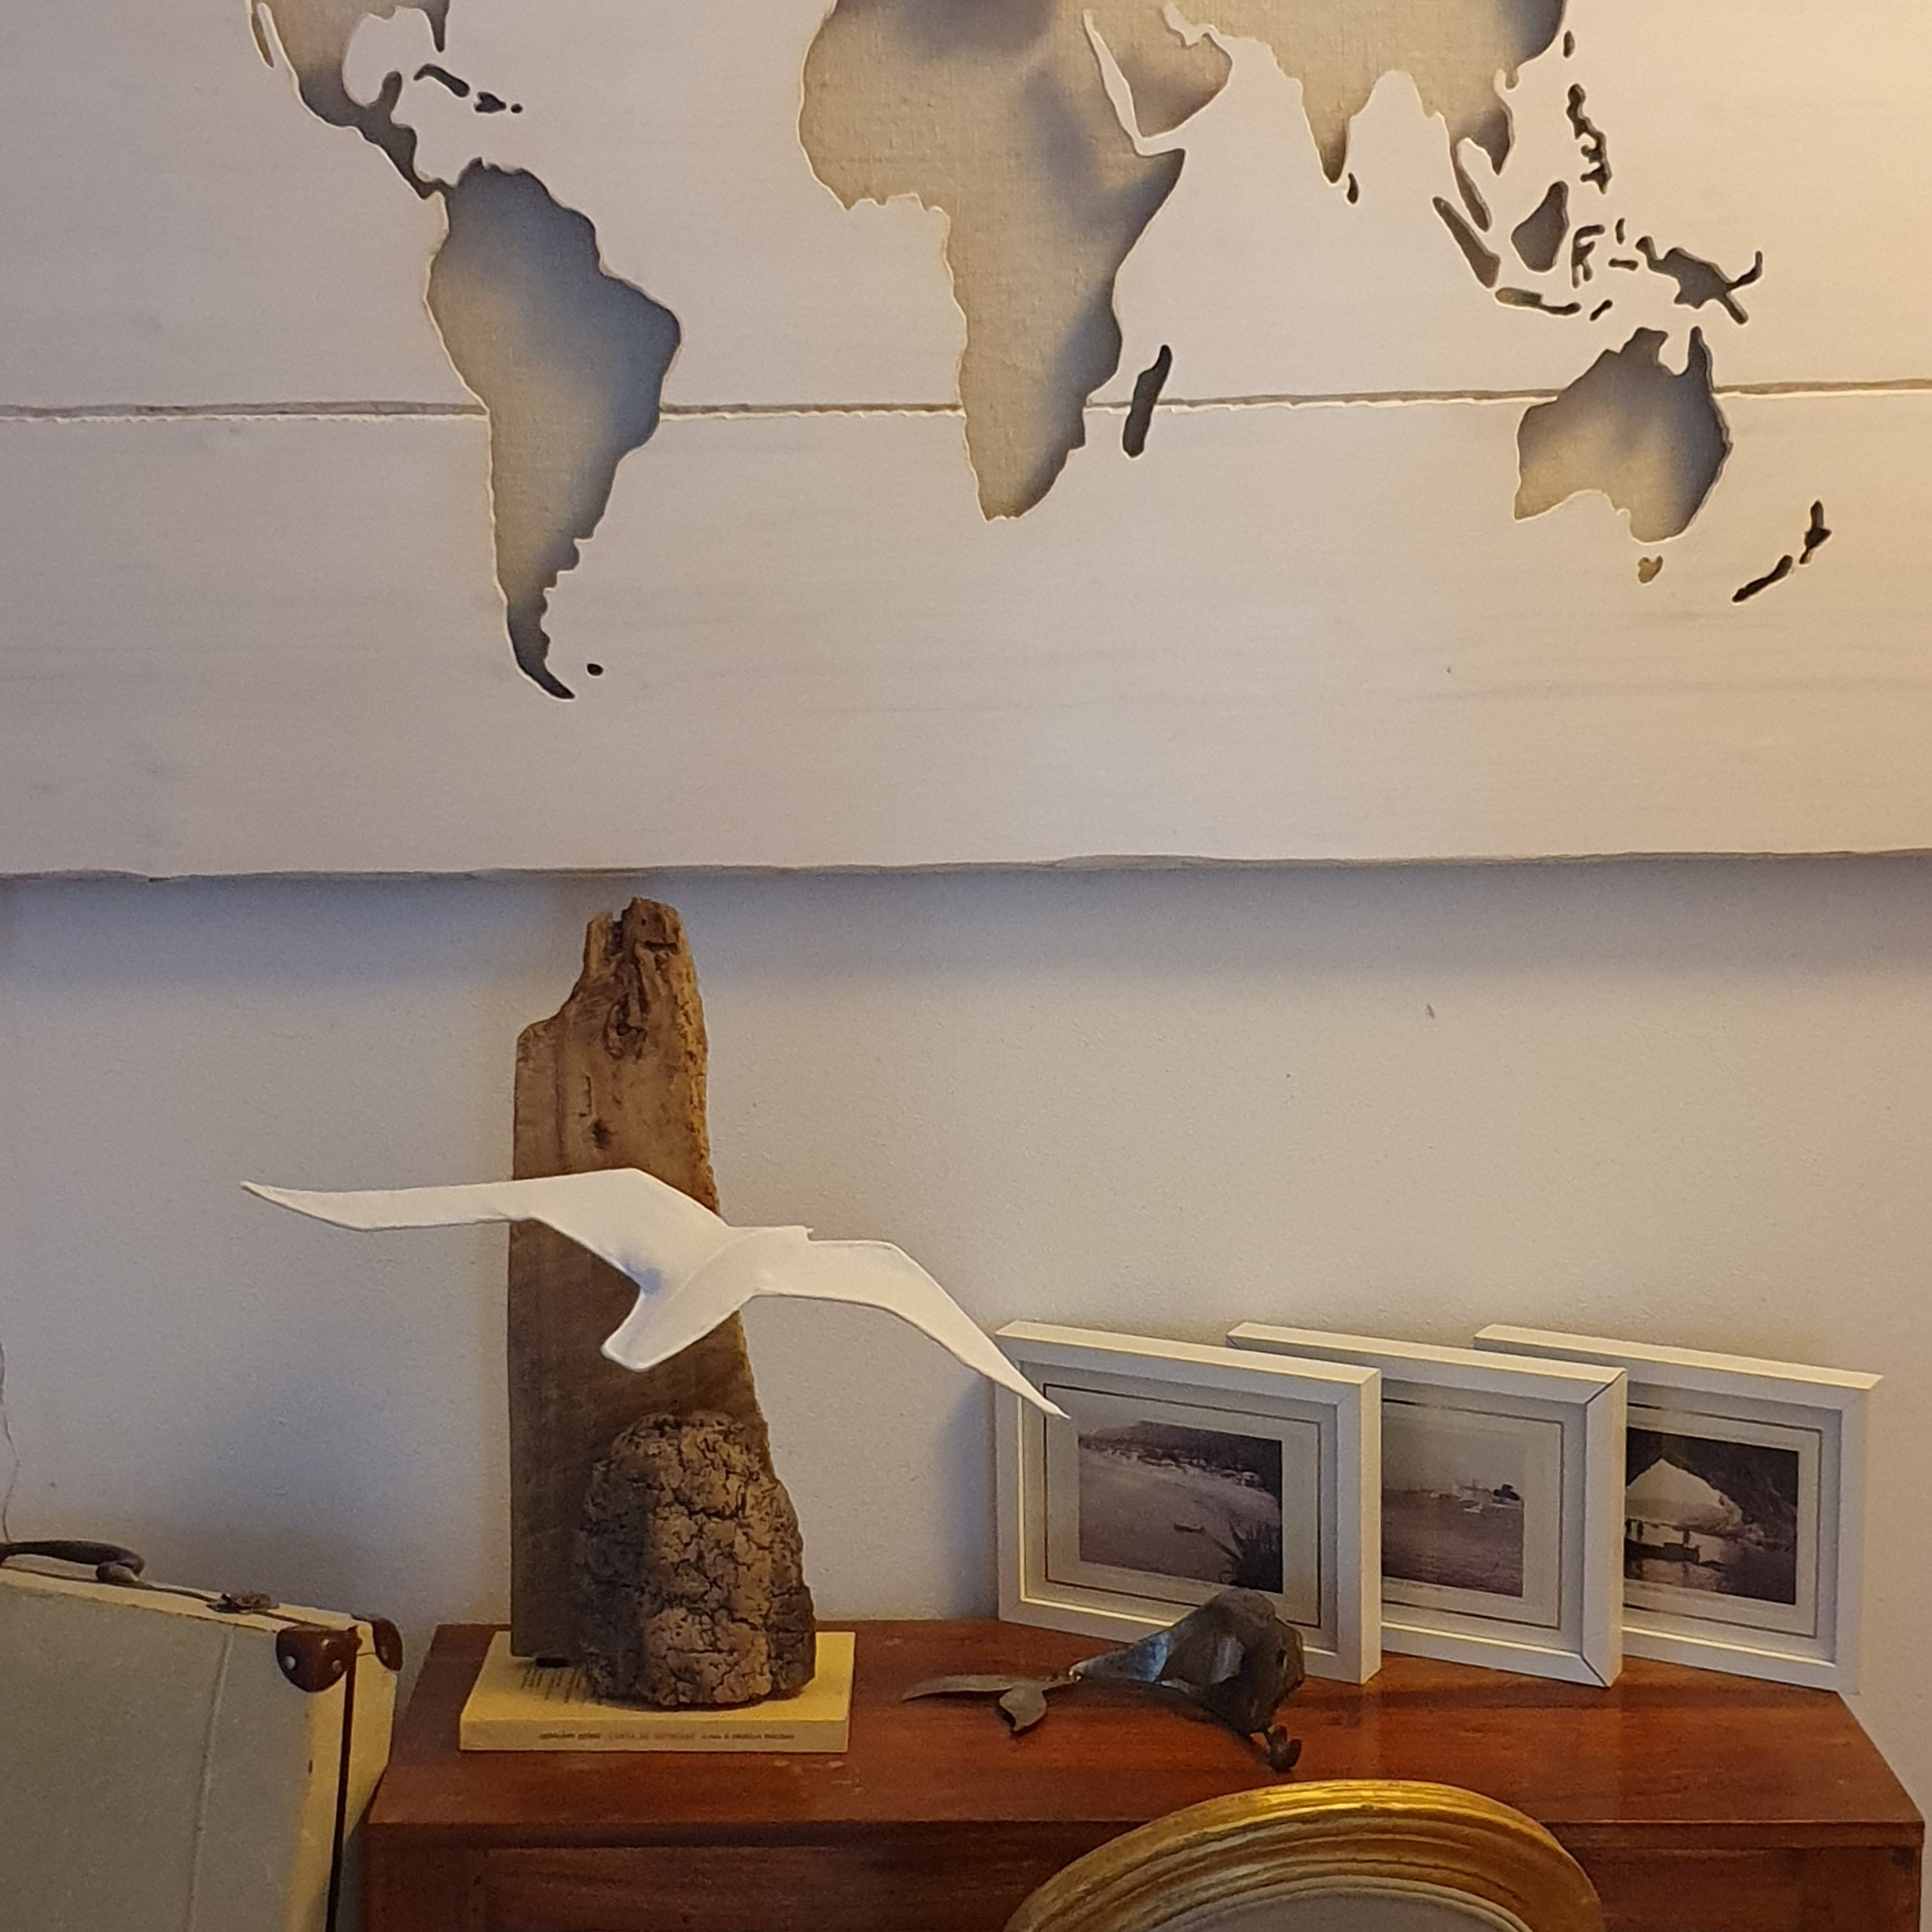 Seagull Lamp with Wooden Support